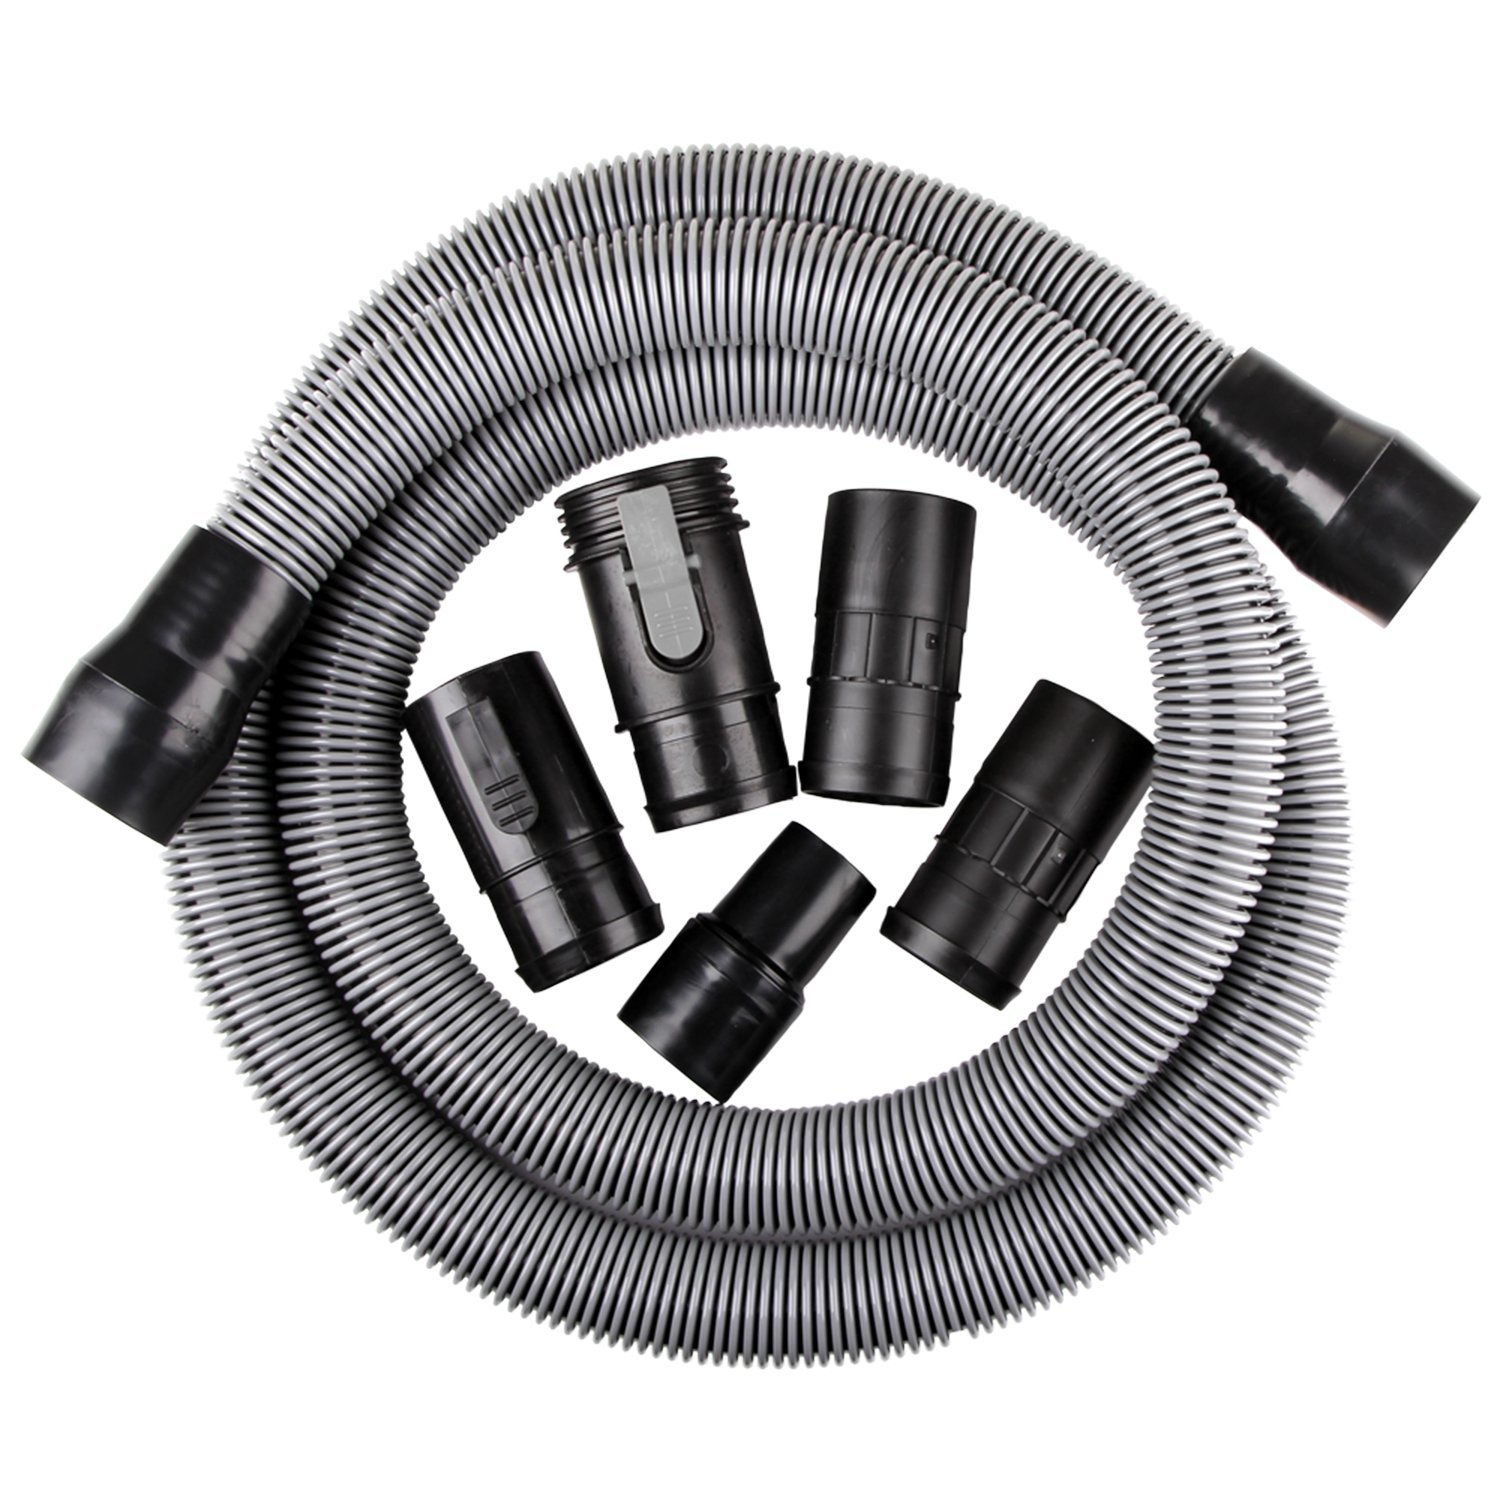 WORKSHOP Wet Dry Vacuum Accessories WS17823A Wet Dry Vacuum Hose, 1-7/8-Inch x 10-Feet Heavy Duty Contractor Wet Dry Vac Hose for Wet Dry Shop Vacuums by WORKSHOP Wet/Dry Vacs